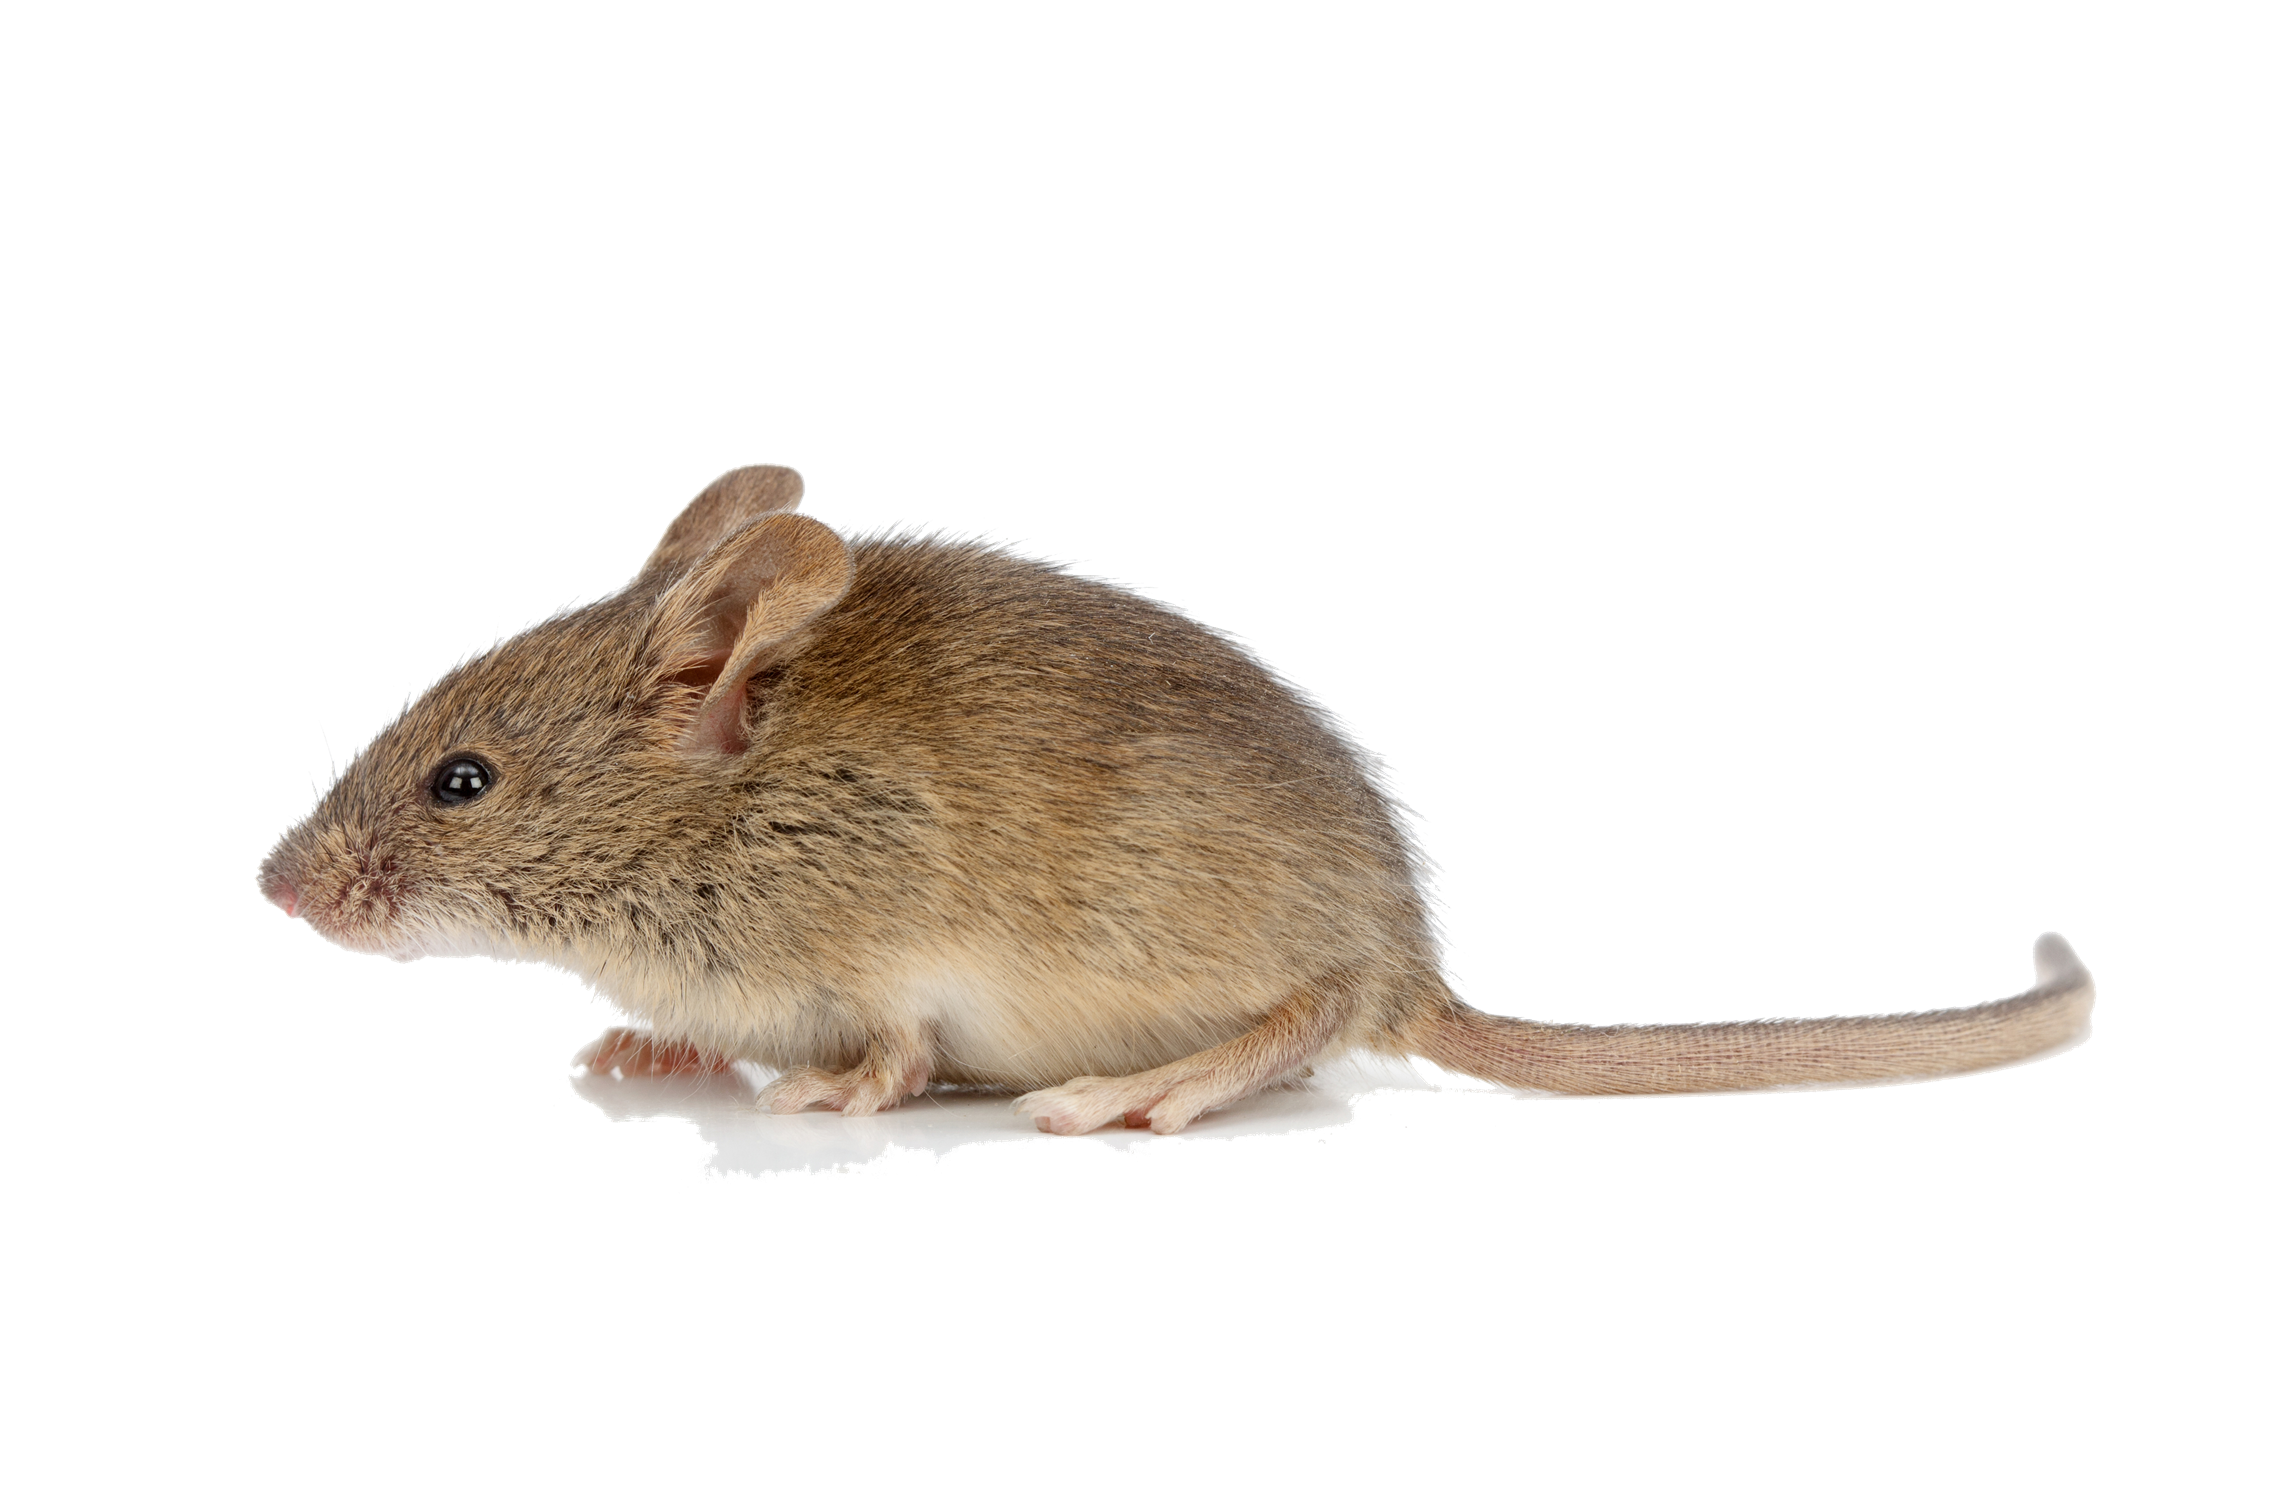 Animal mice transparent images. Mouse png picture transparent stock